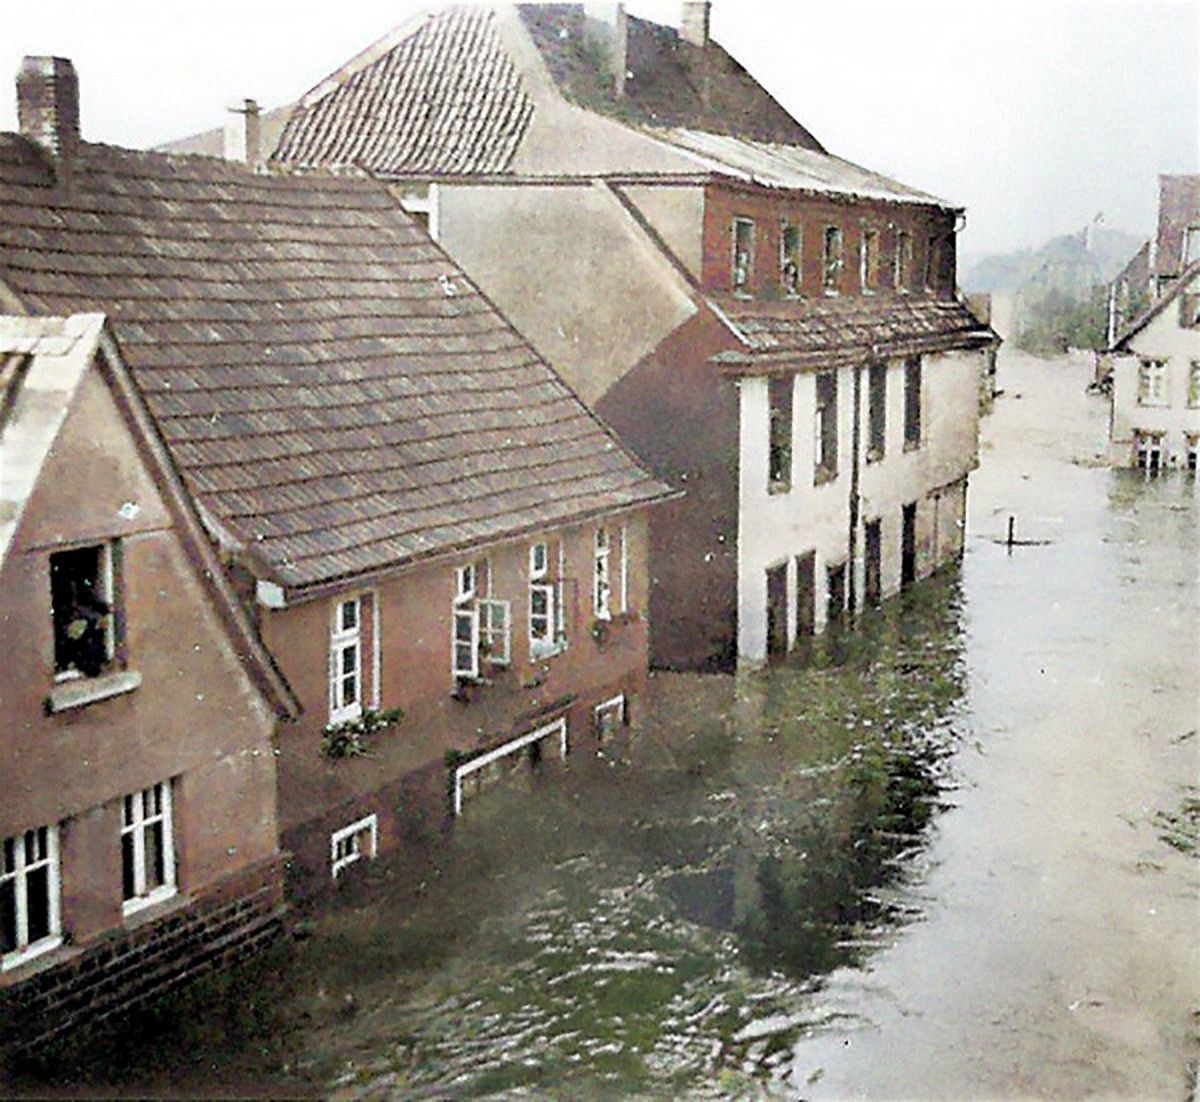 Residents, stare in amazement, at the rising waters: the destruction of the dams at Möhne and Edersee devastated not only arable land and local industry, but also family homes